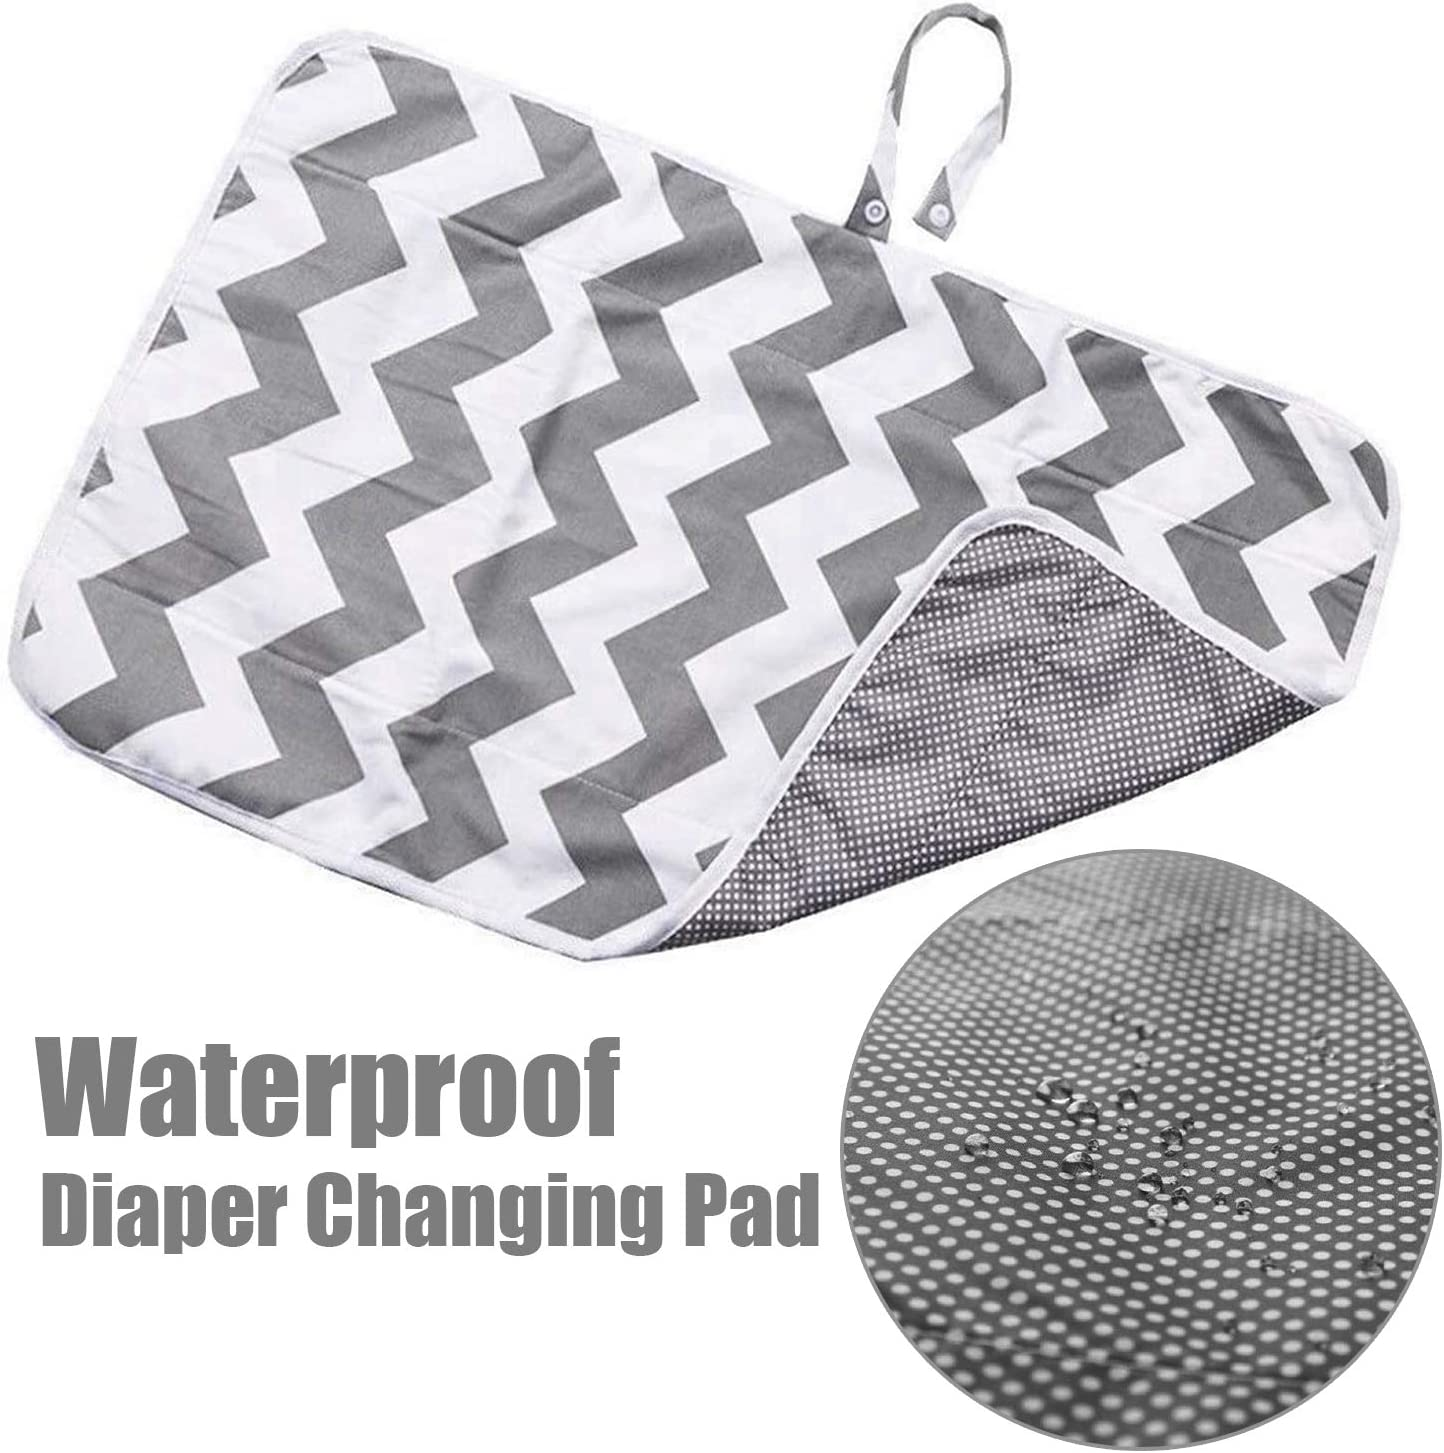 Nappy Changing Mat Portable Diaper Changing Pad Foldable Infant Urinal Pad Waterproof Baby Changing Pad for Newborn /& Toddlers Home Travel Outside